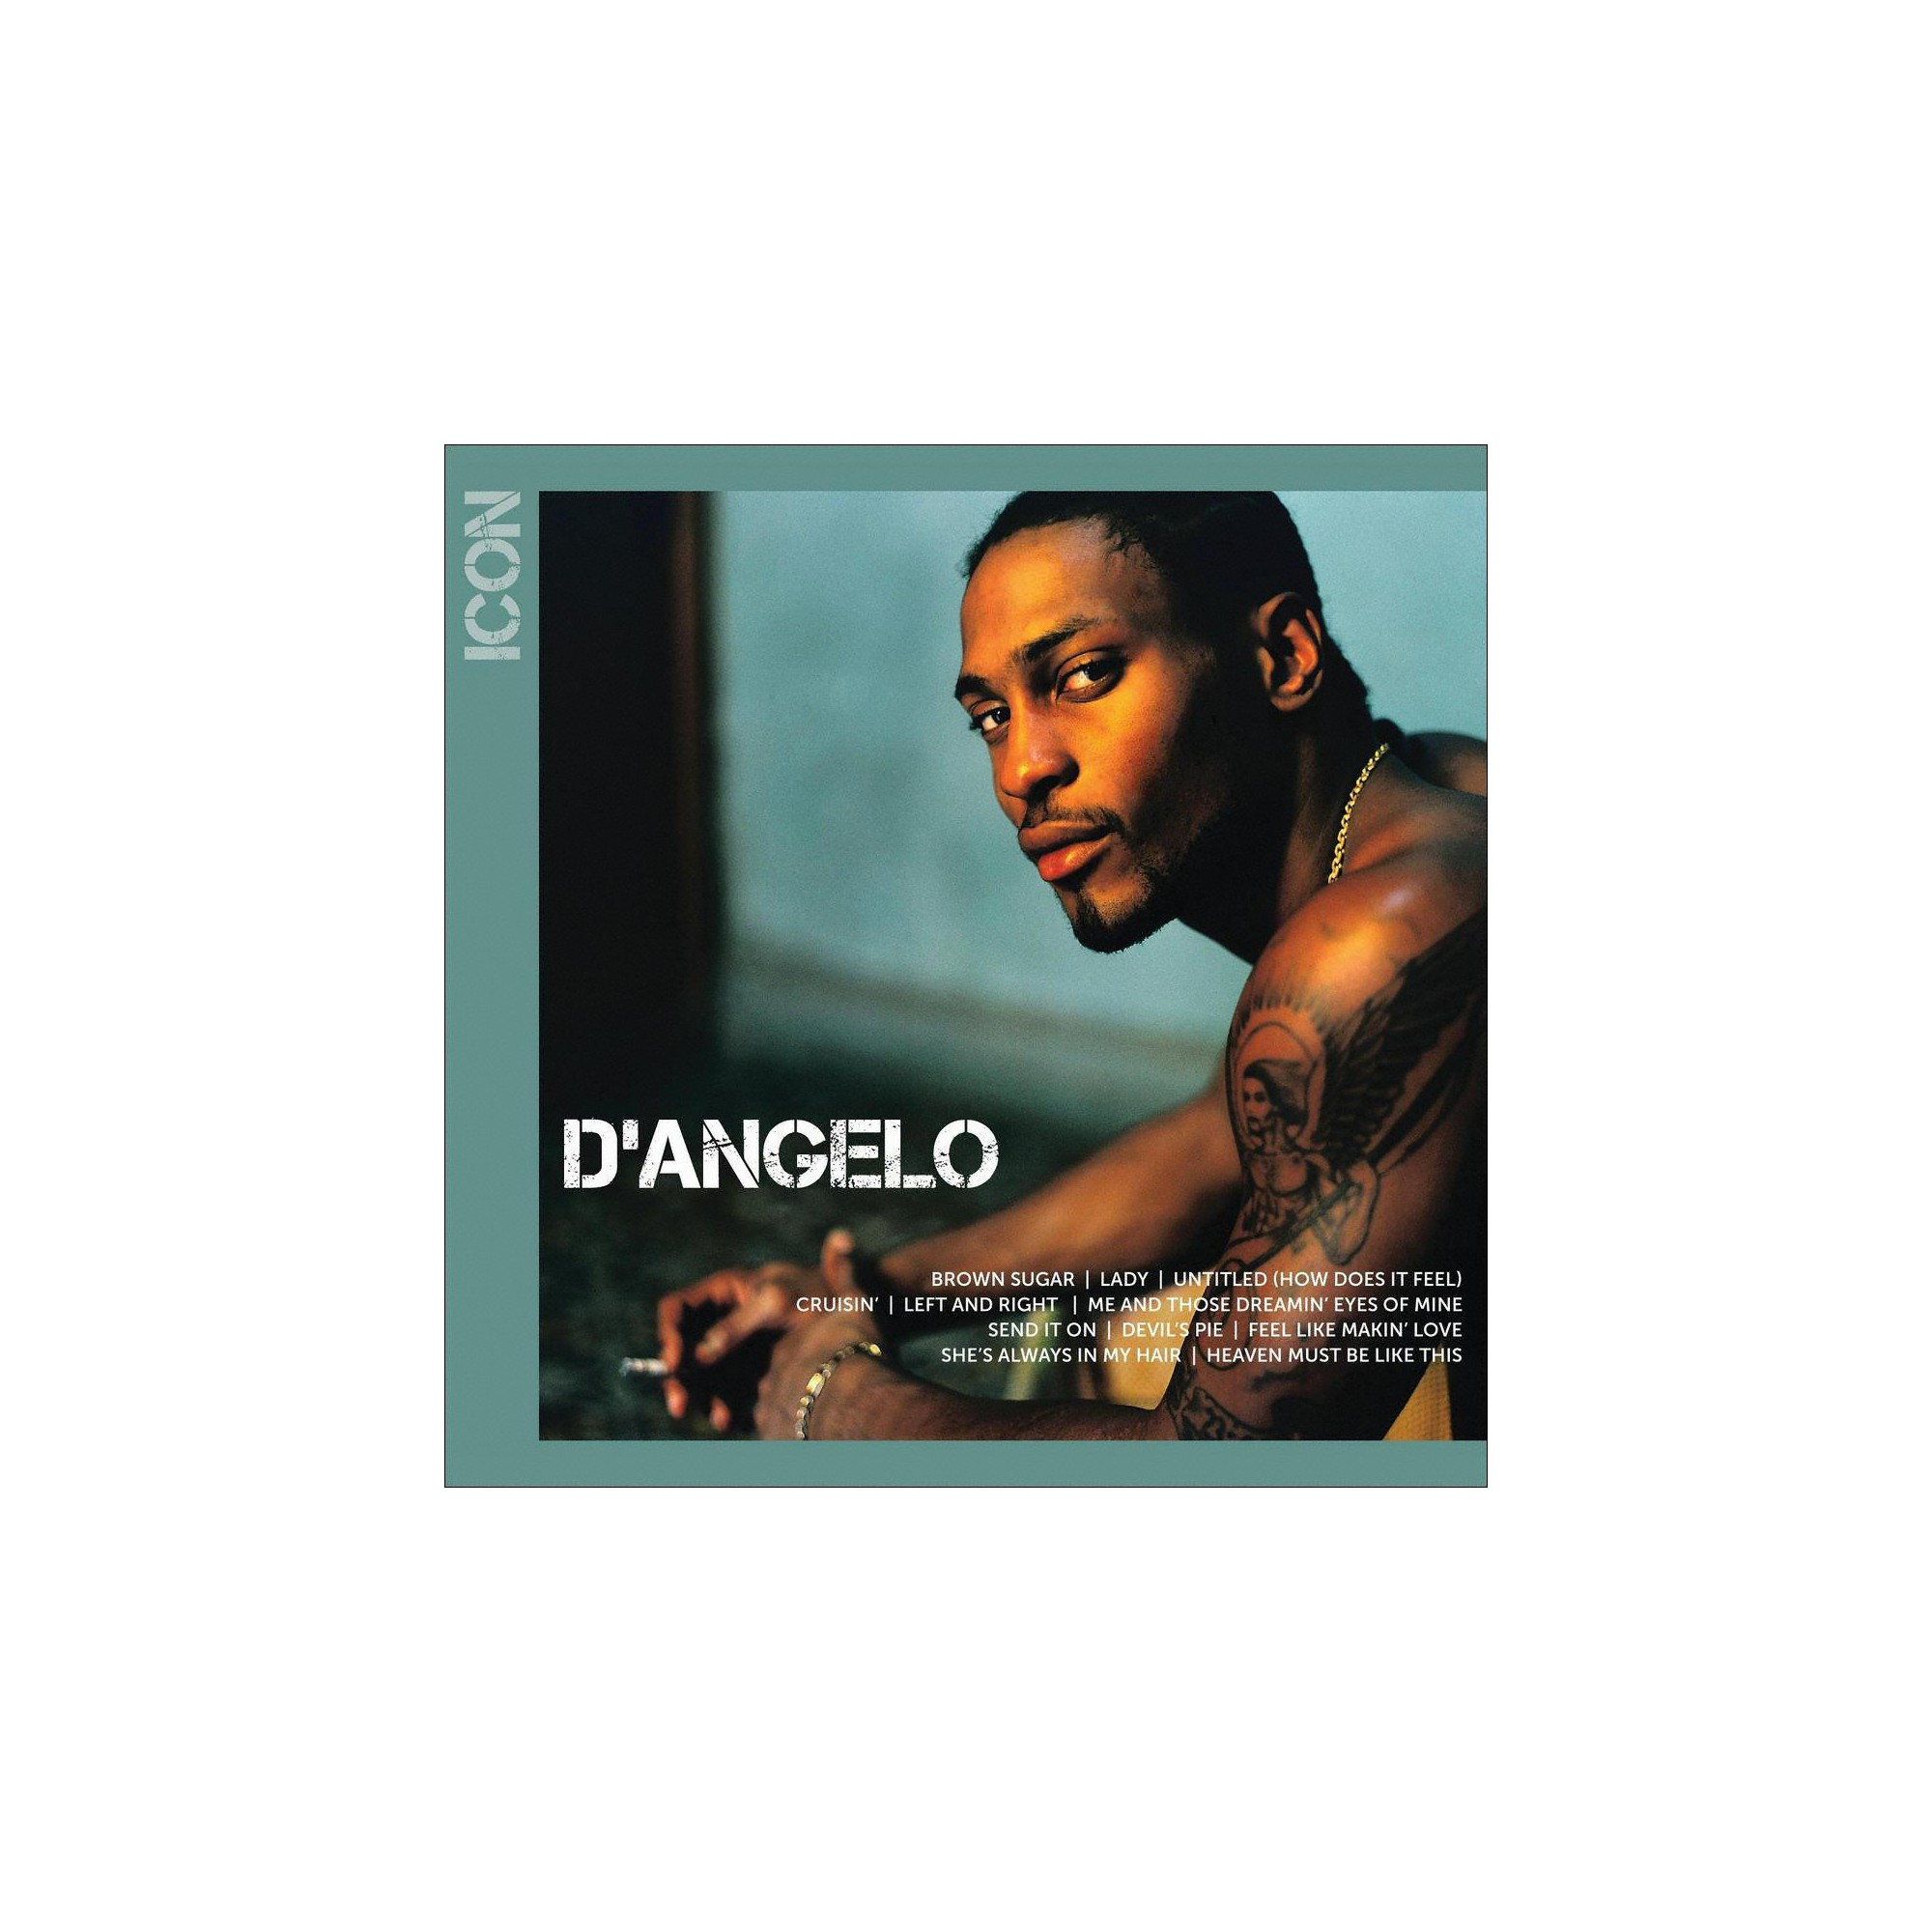 Dangelo Icon Pop Music Pinterest Pop Music Icons And Products